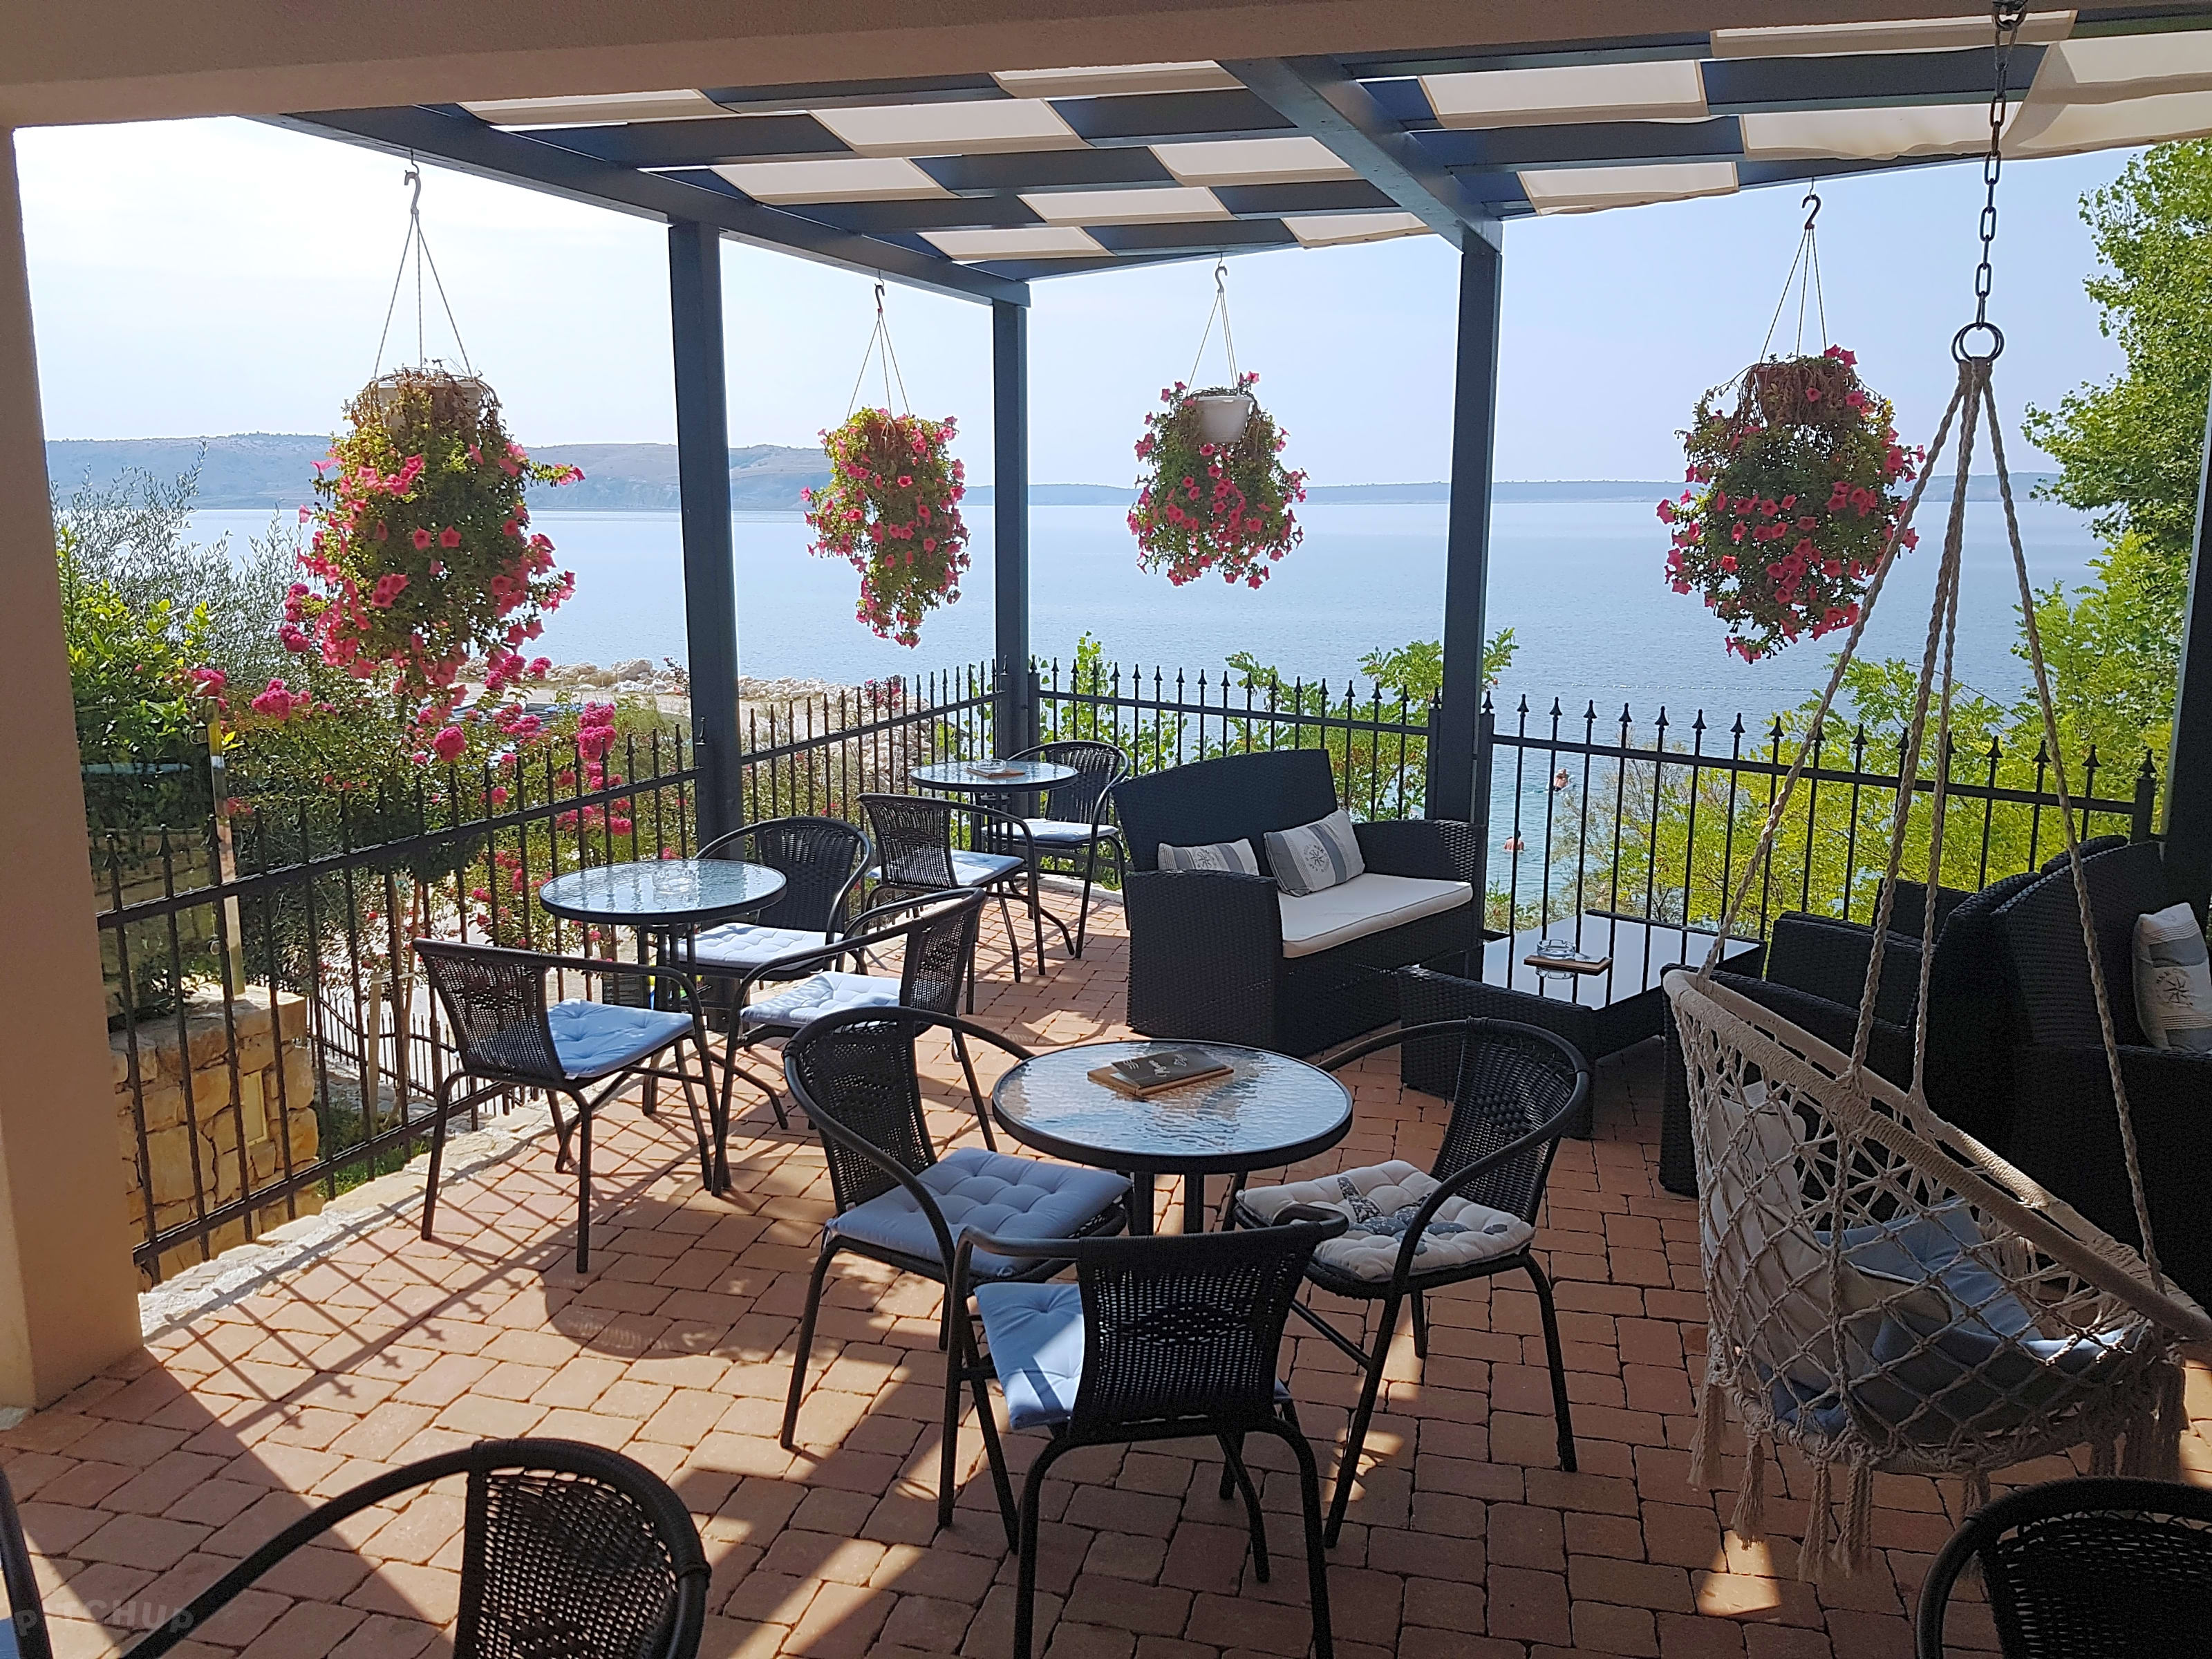 Odmoree Camping, Zadar - Updated 2020 prices - Pitchup®